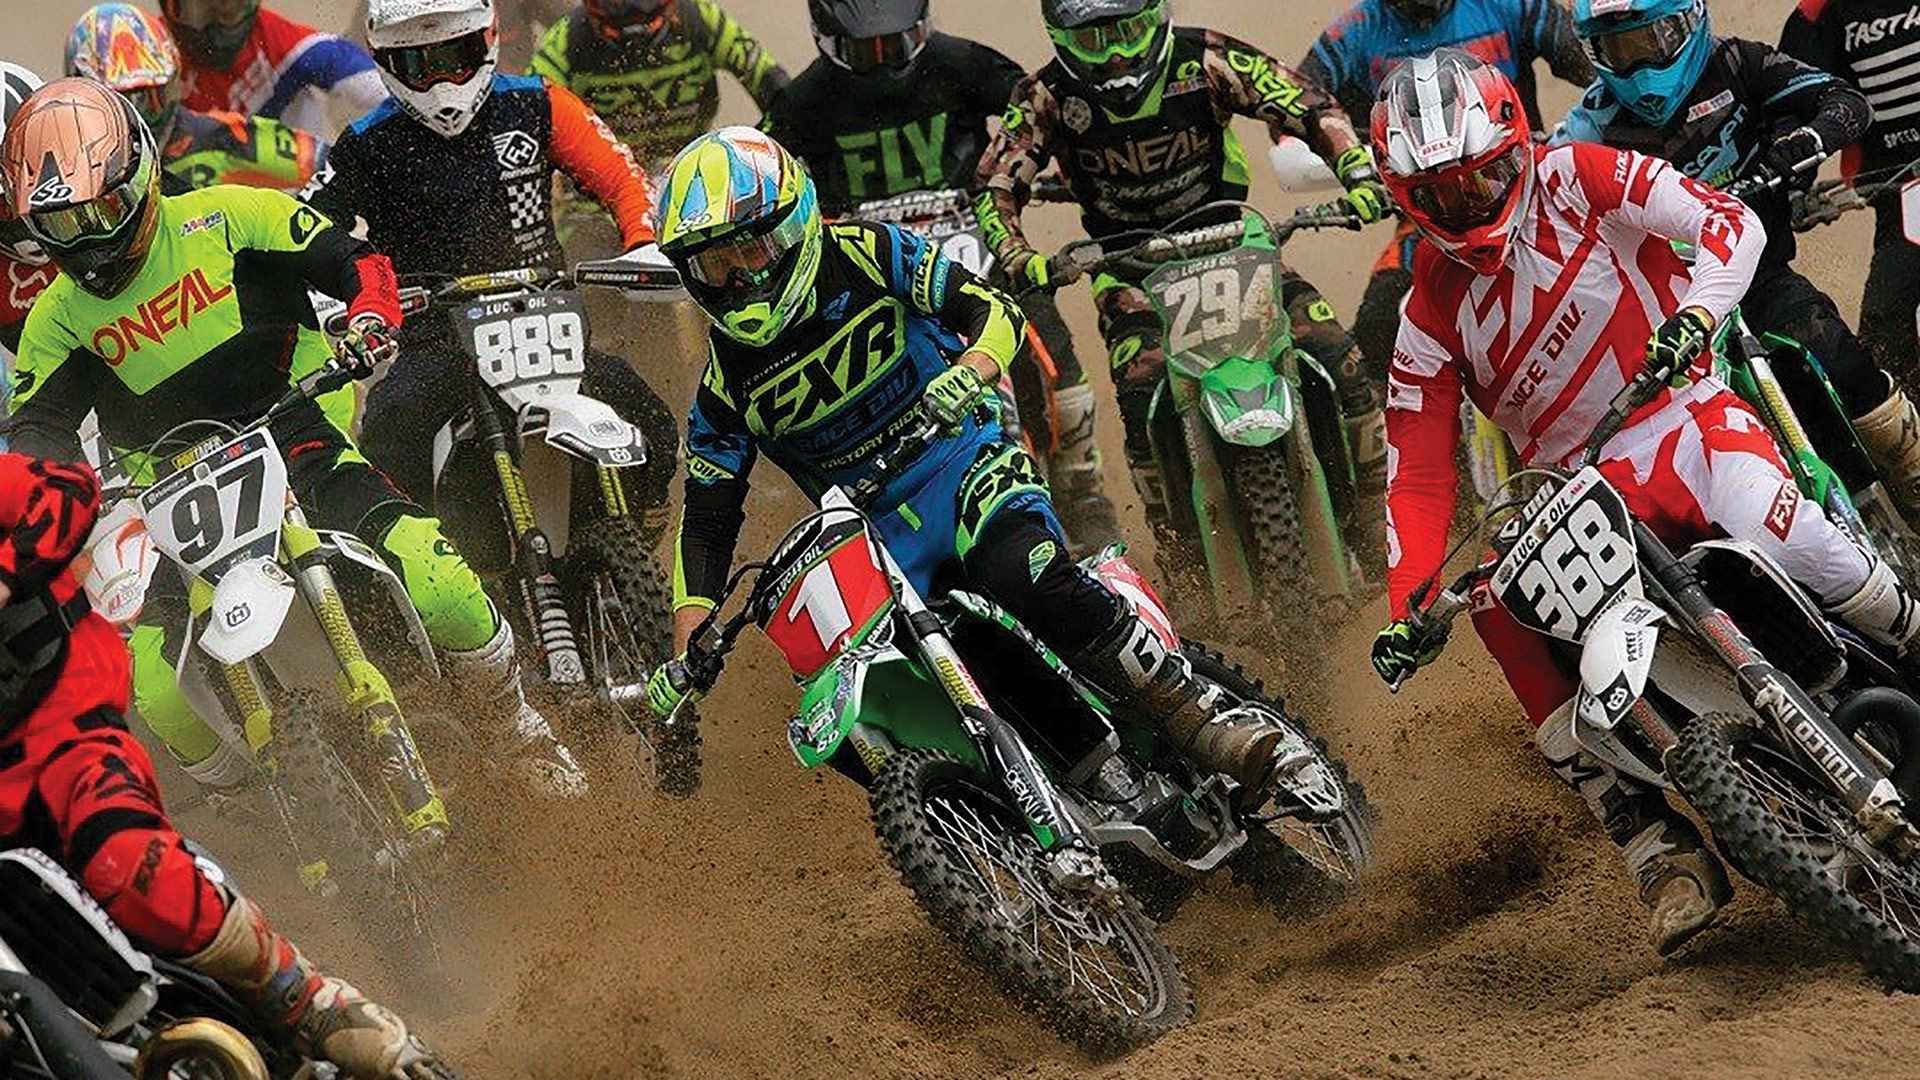 Chris Canning (center) is the reigning motocross champion in the Northeast.